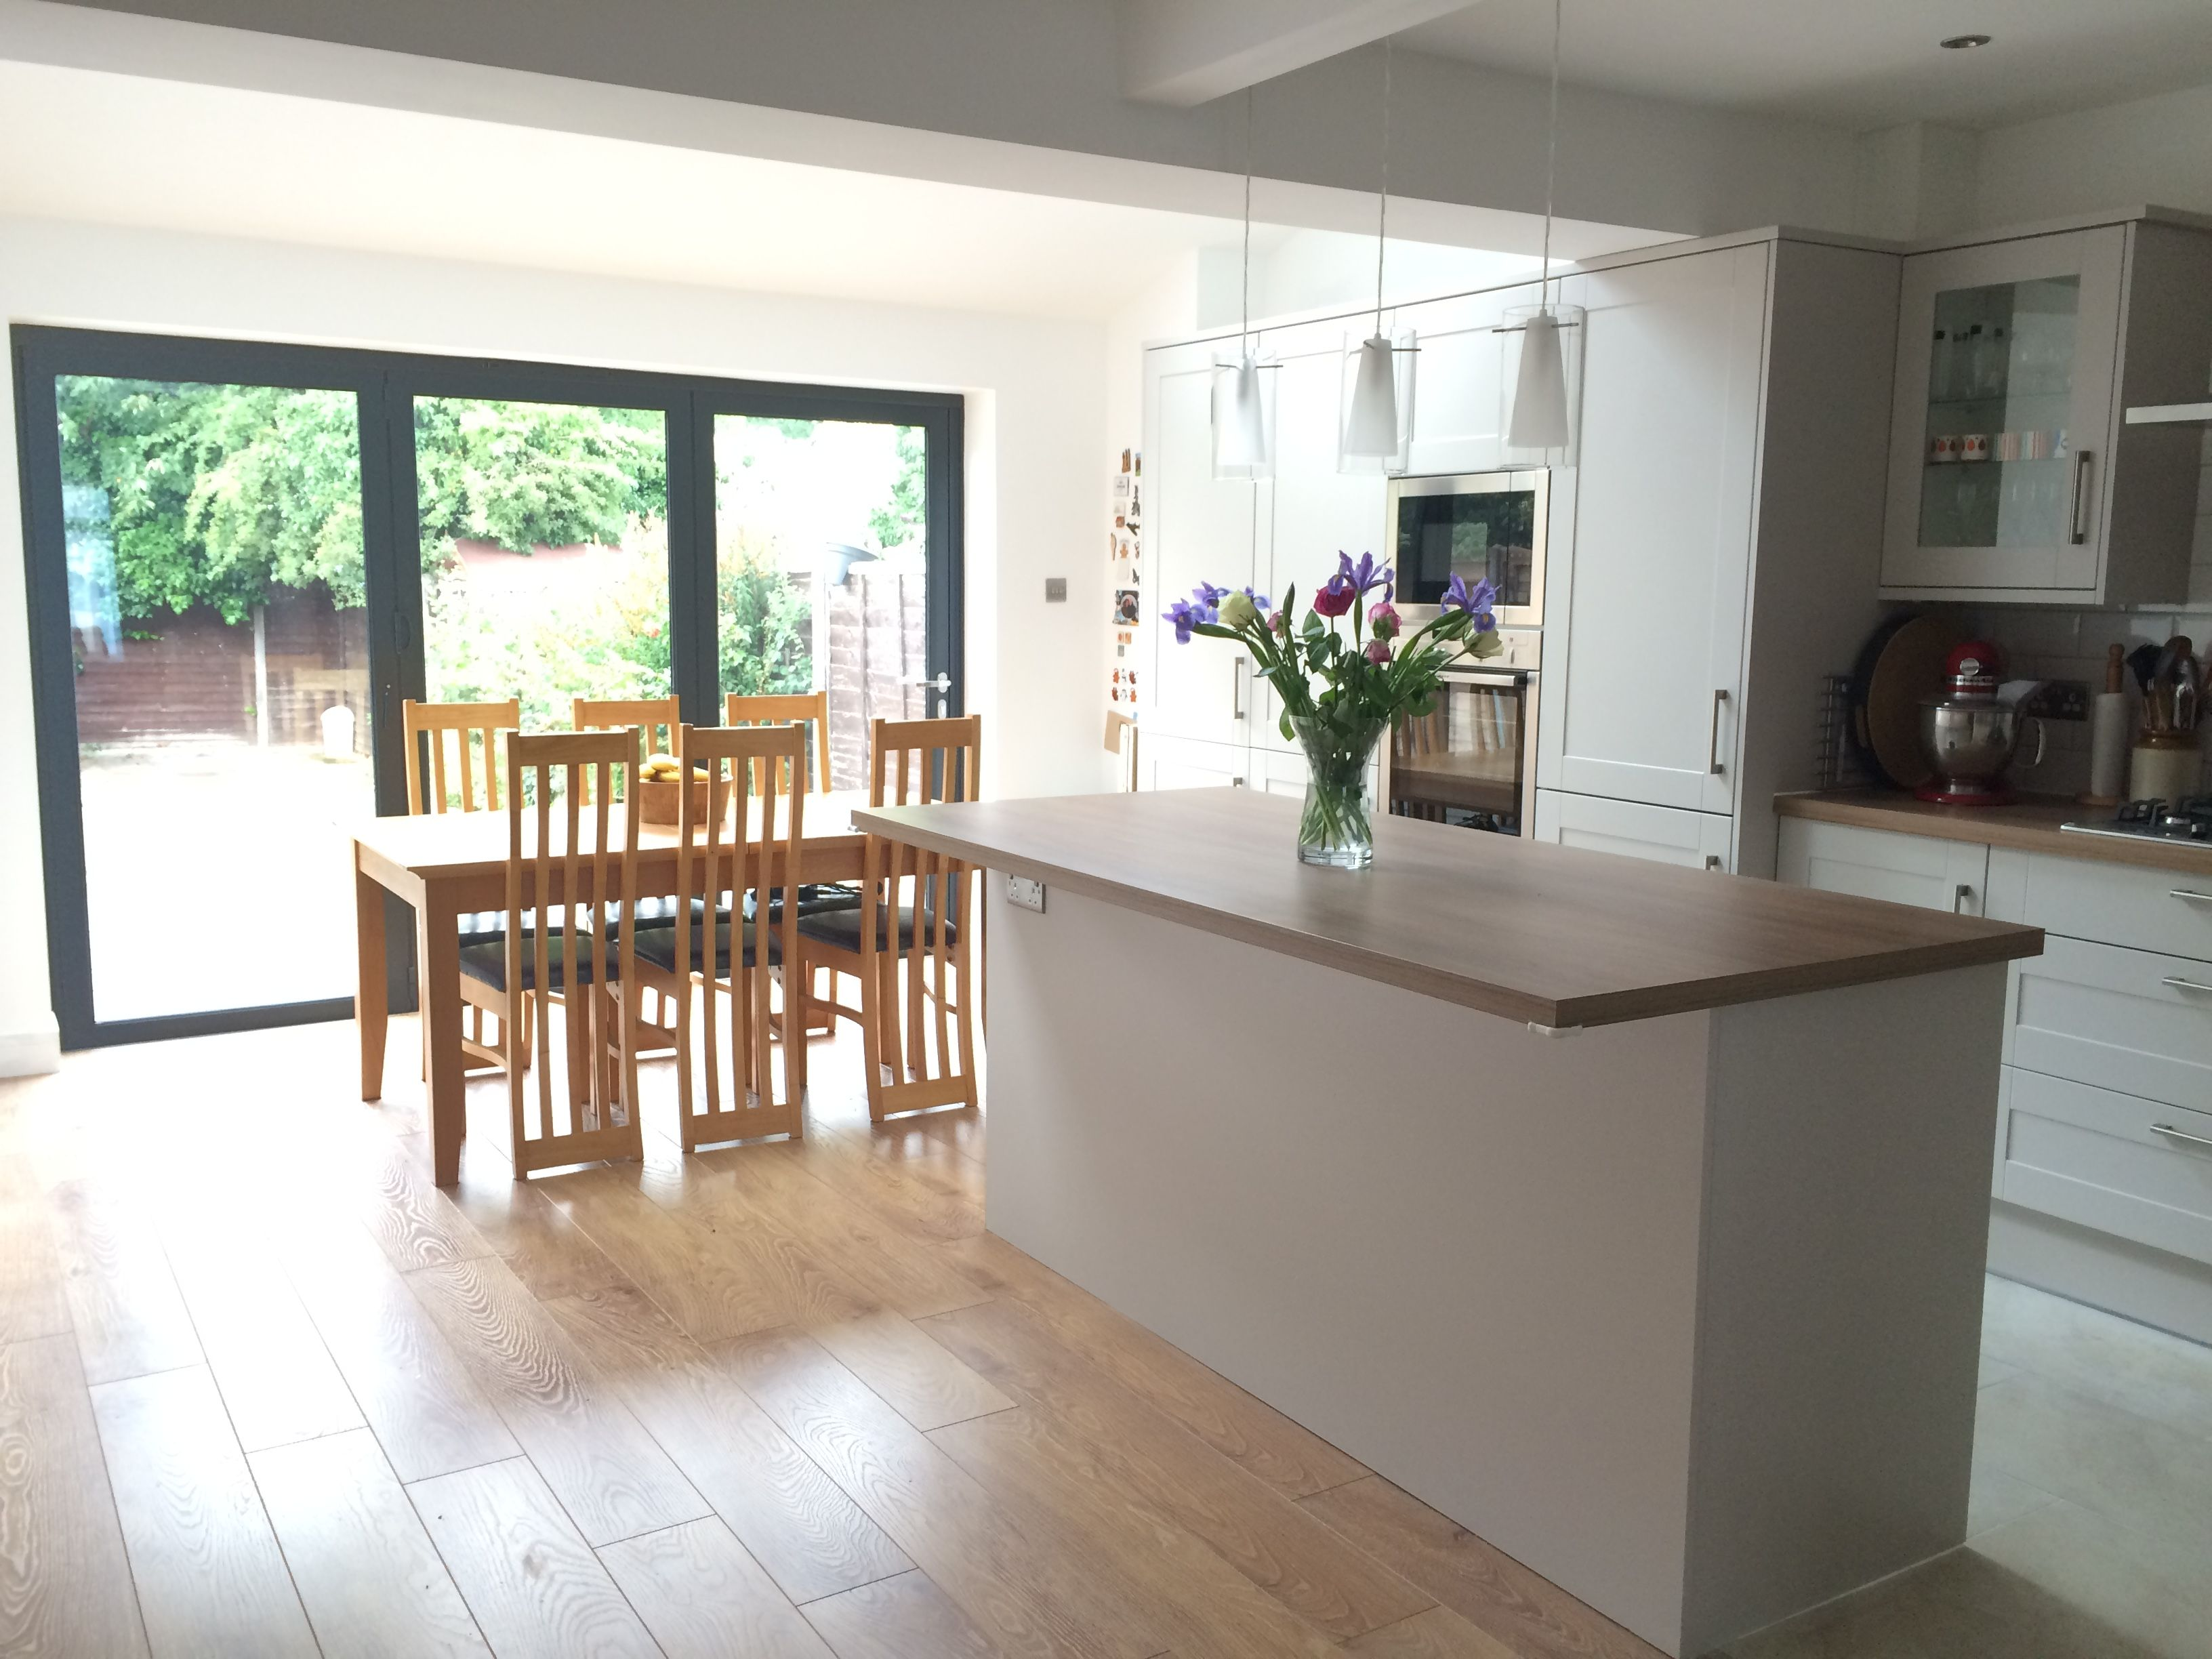 Kitchen extension with bifold doors and vaulted roof with